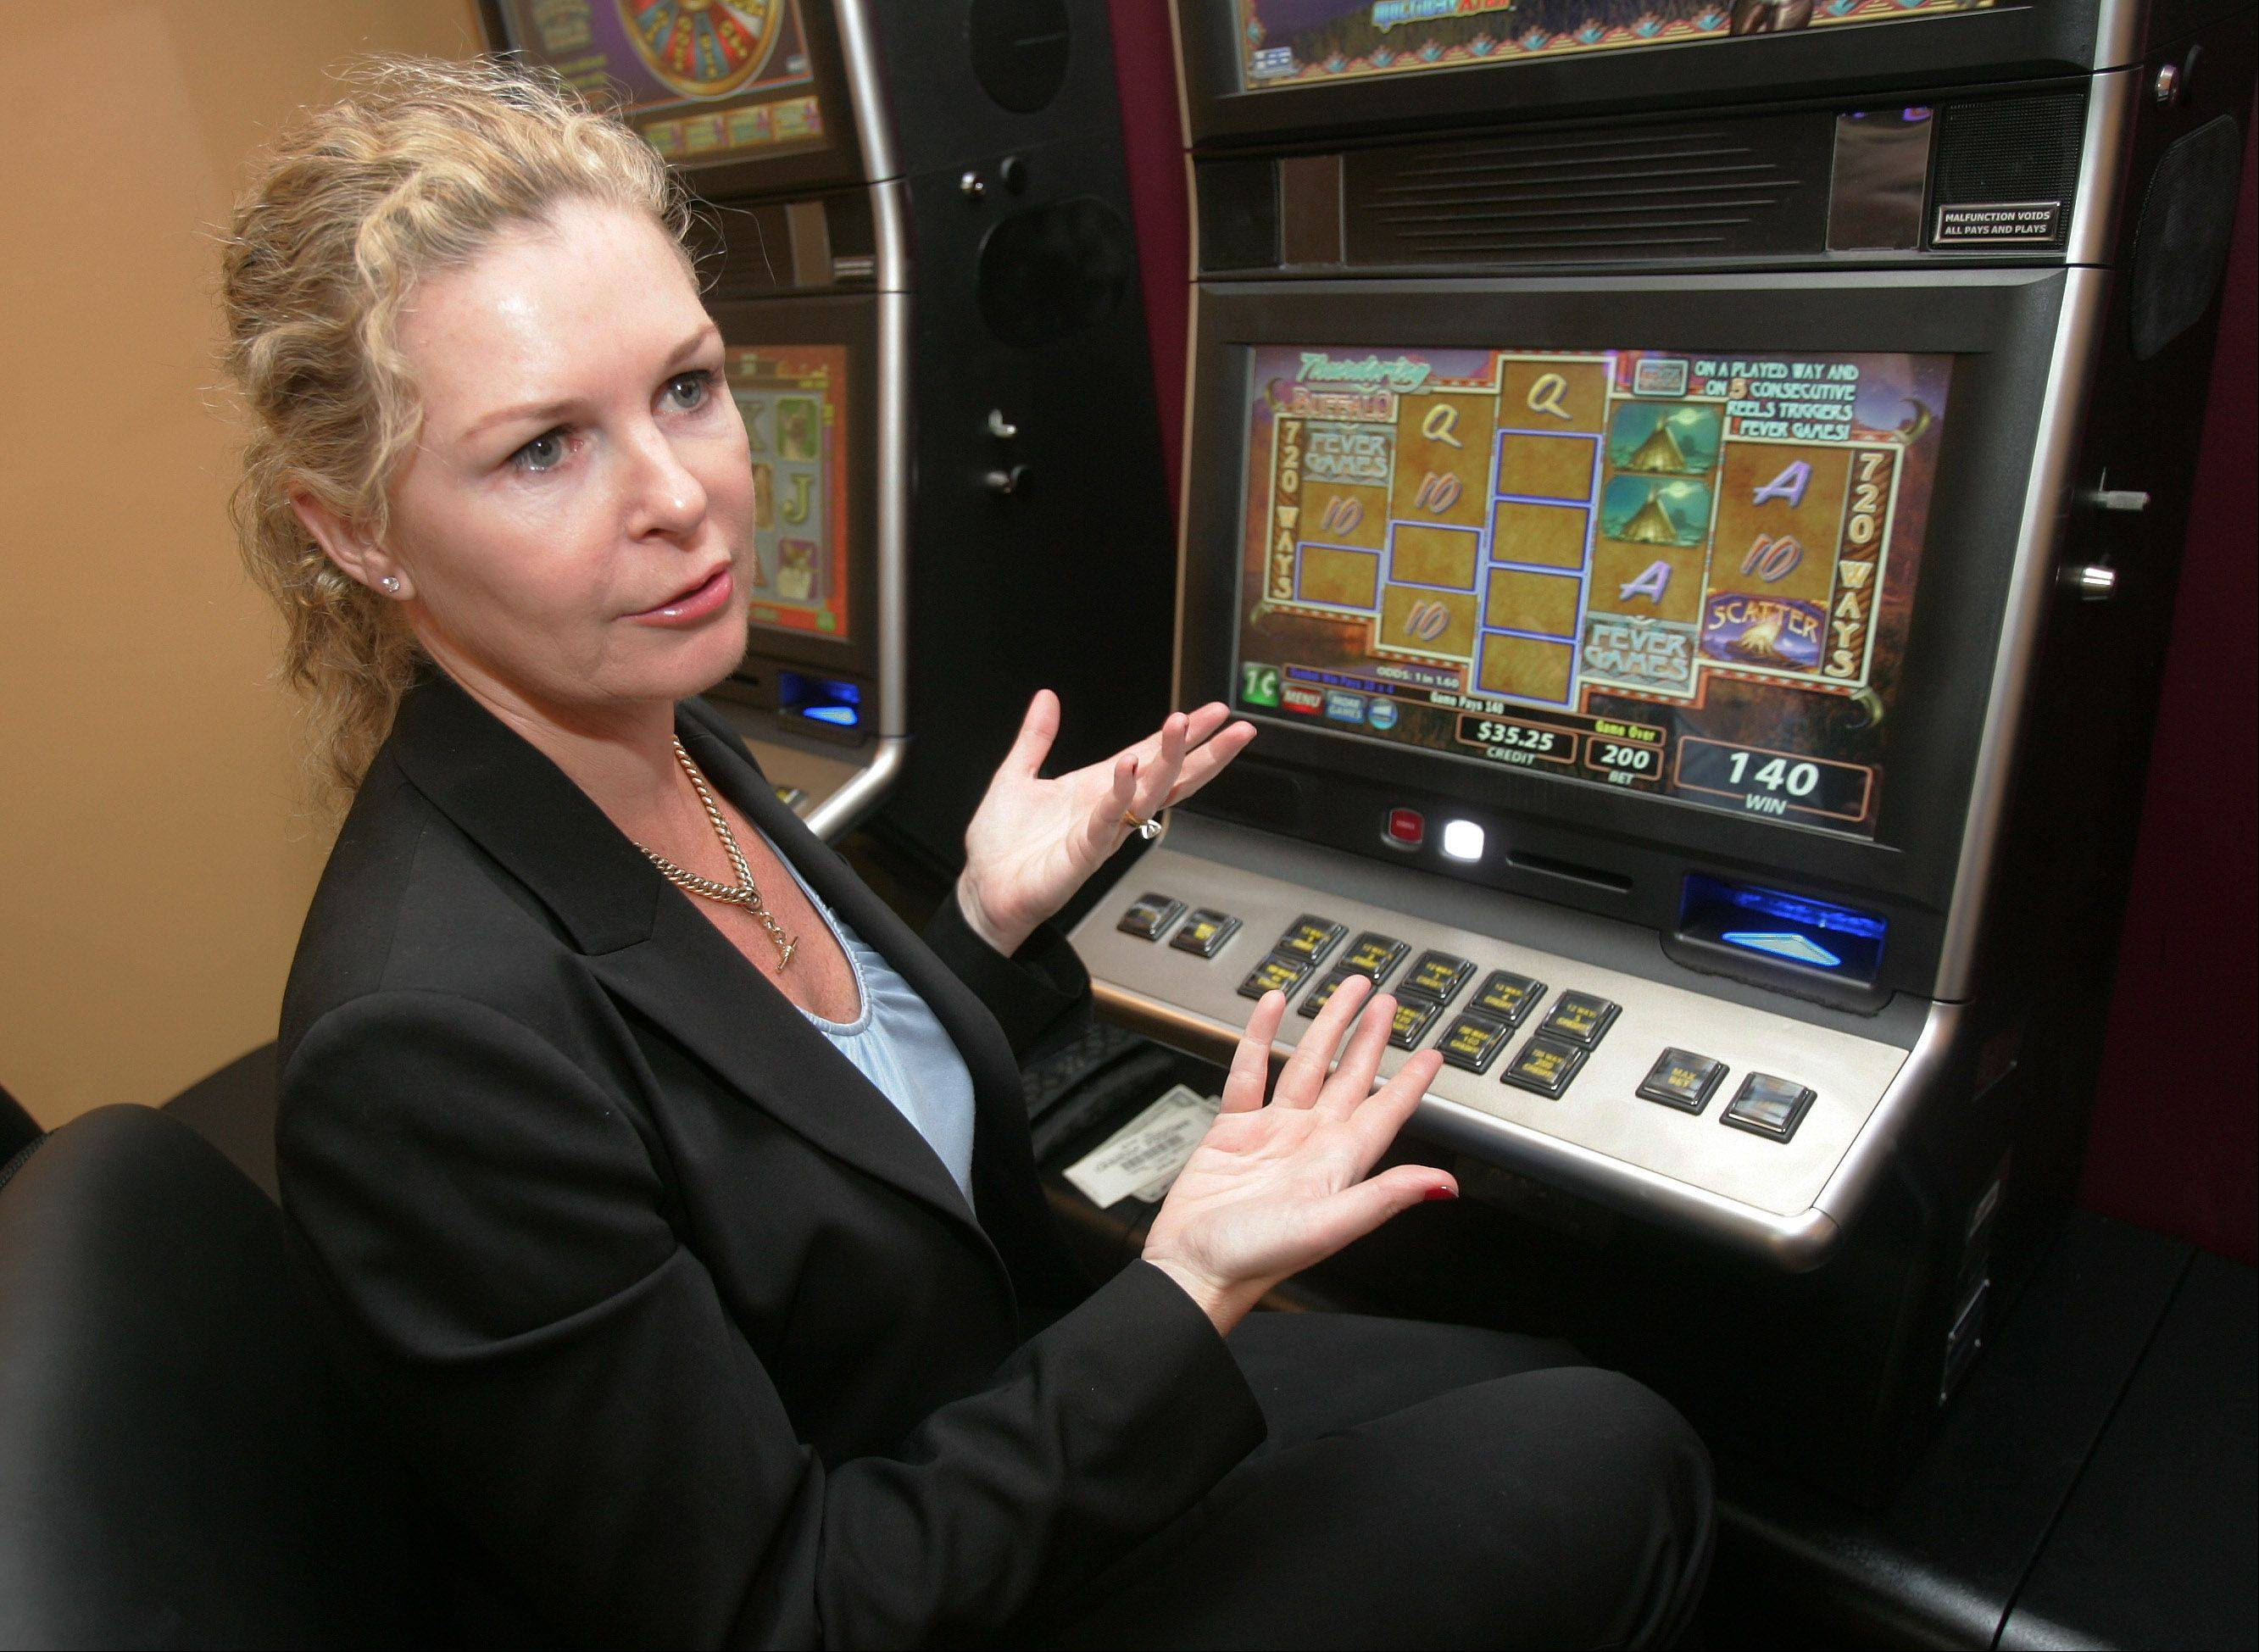 Illinois will keep 30 percent of the net income from the state's new video gambling terminals in restaurants and bars, with the gaming companies and the location owners splitting about 70 percent. Lynne Morris, CEO of Morris Gaming in Skokie, demonstrates the new machines Wednesday at Rosati's of Lakemoor, which is owned in part by Anthony Patti, one of the first business owners to be licensed by the Illinois Gaming Board.